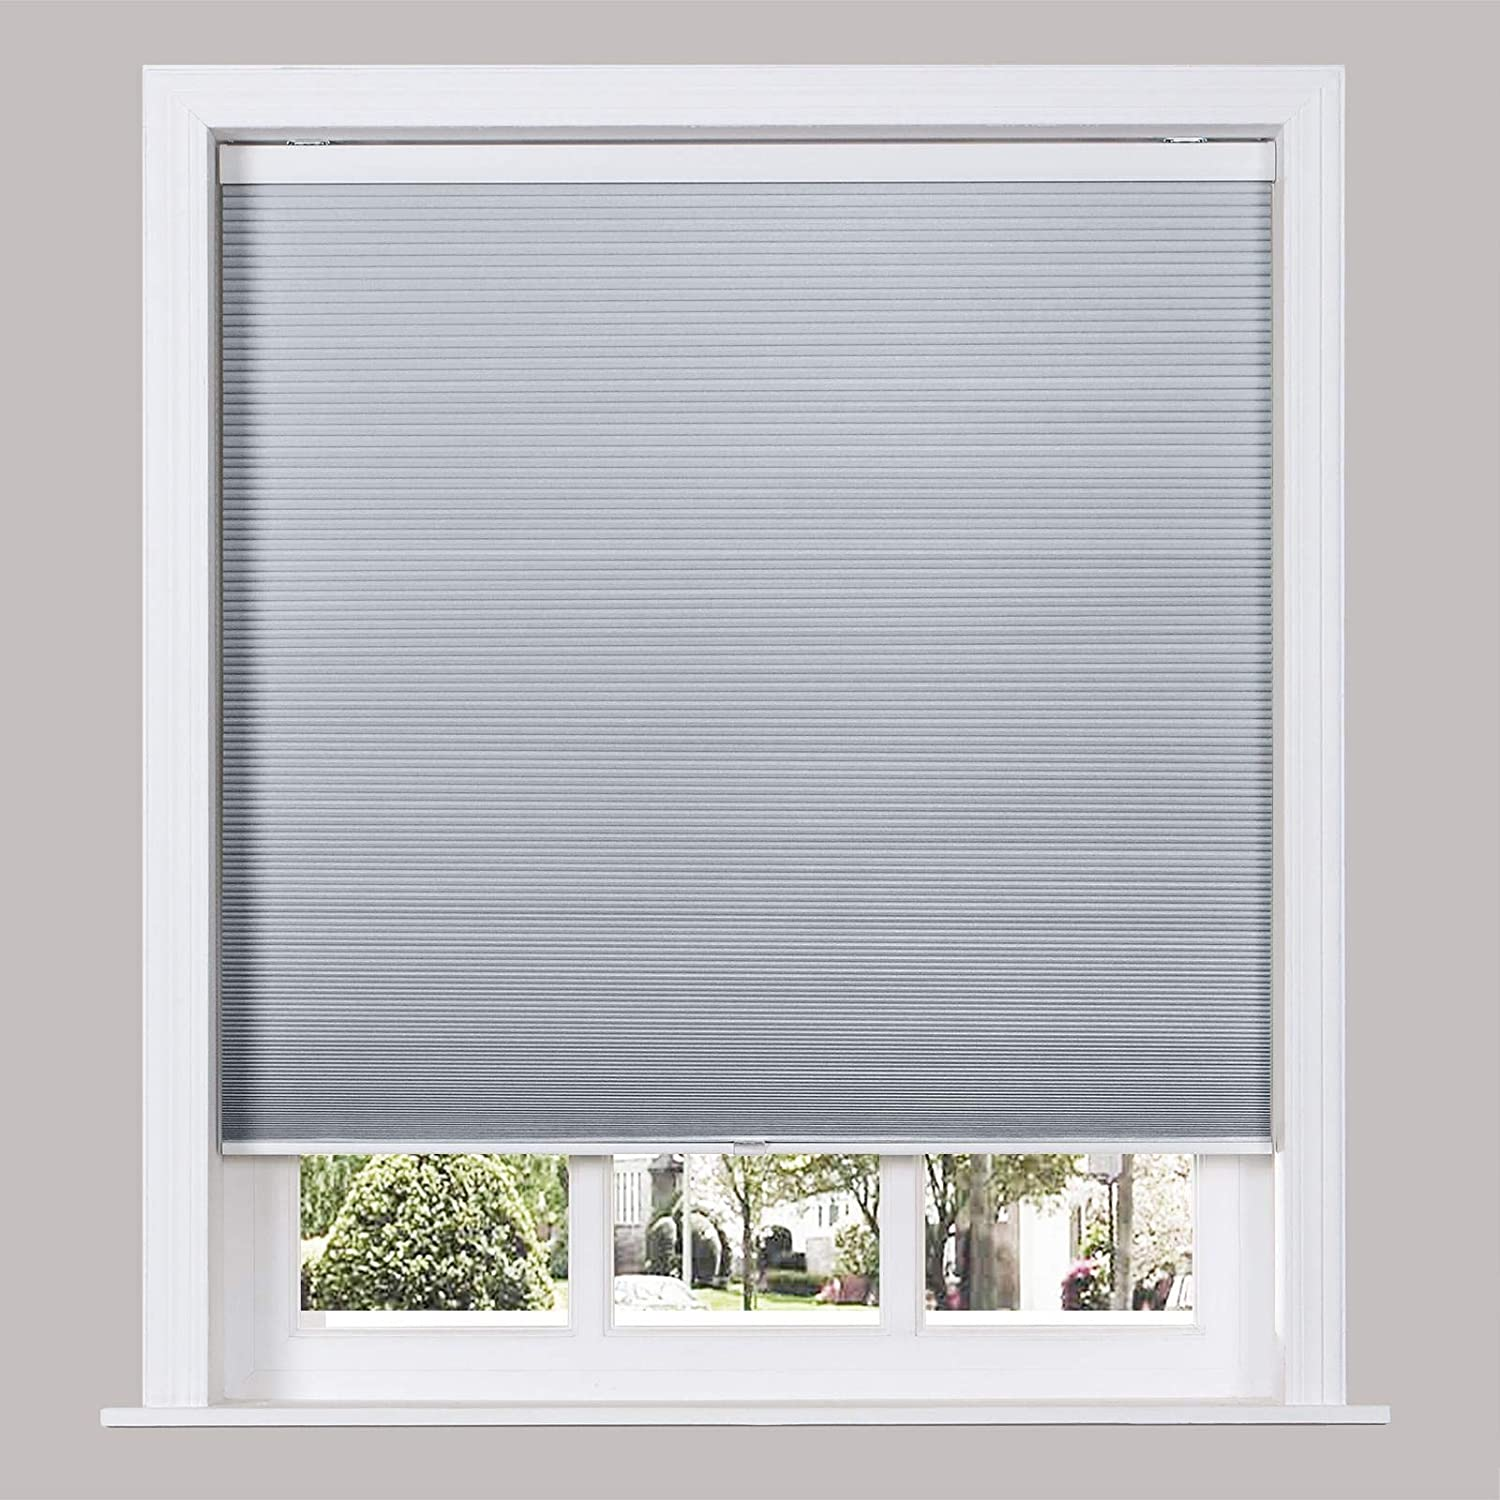 TWOPAGES Custom Made Cordless Cellular Shades for Window, Single Cell Blackout Shades for Home, Grey